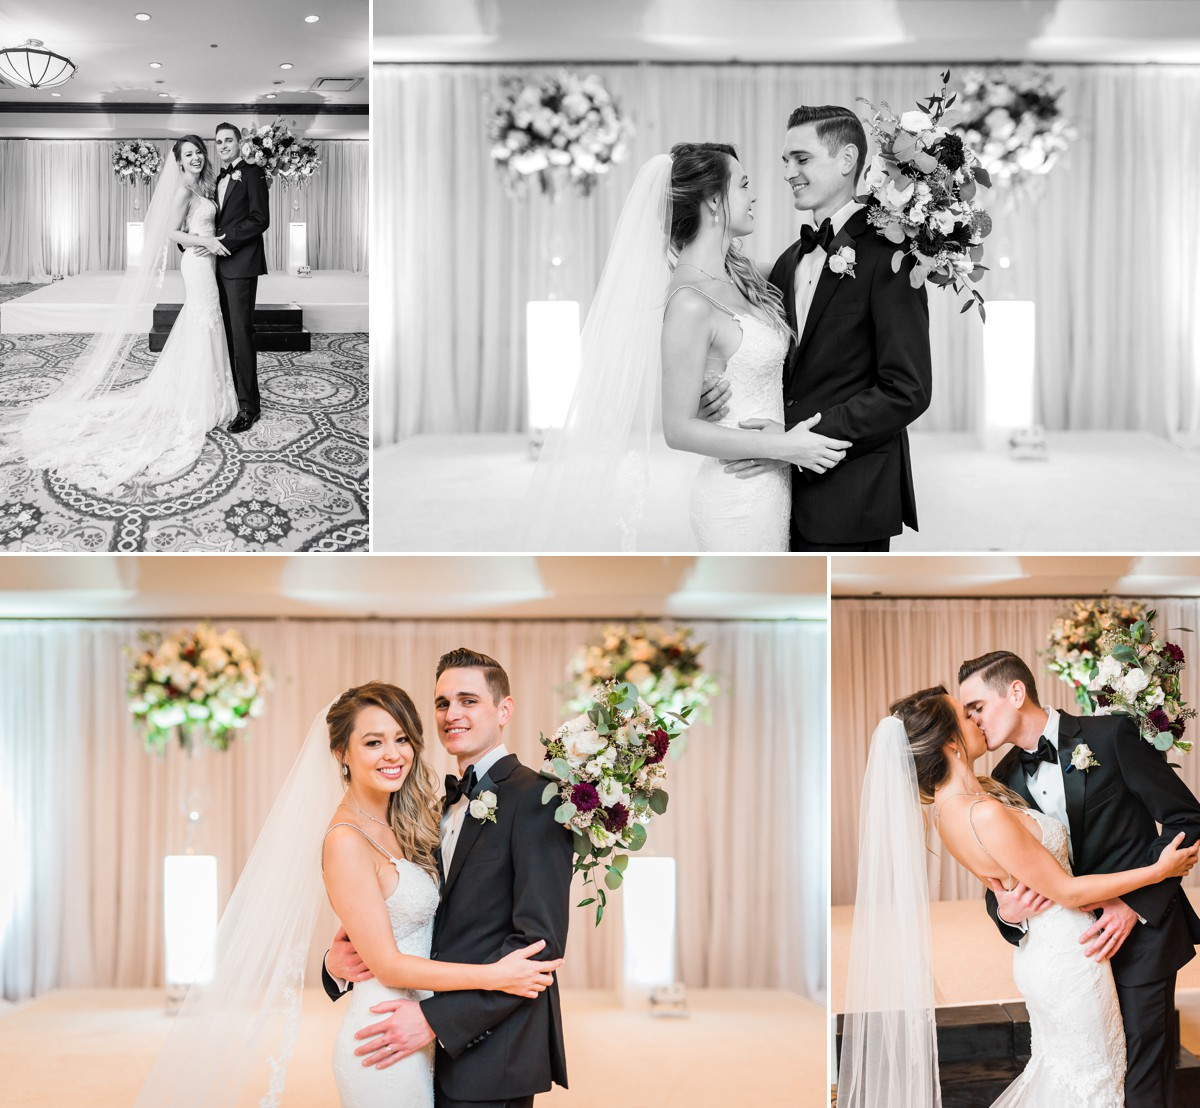 Manor House Wedding at The Houstonian Hotel Bride and Groom Portraits Indoors